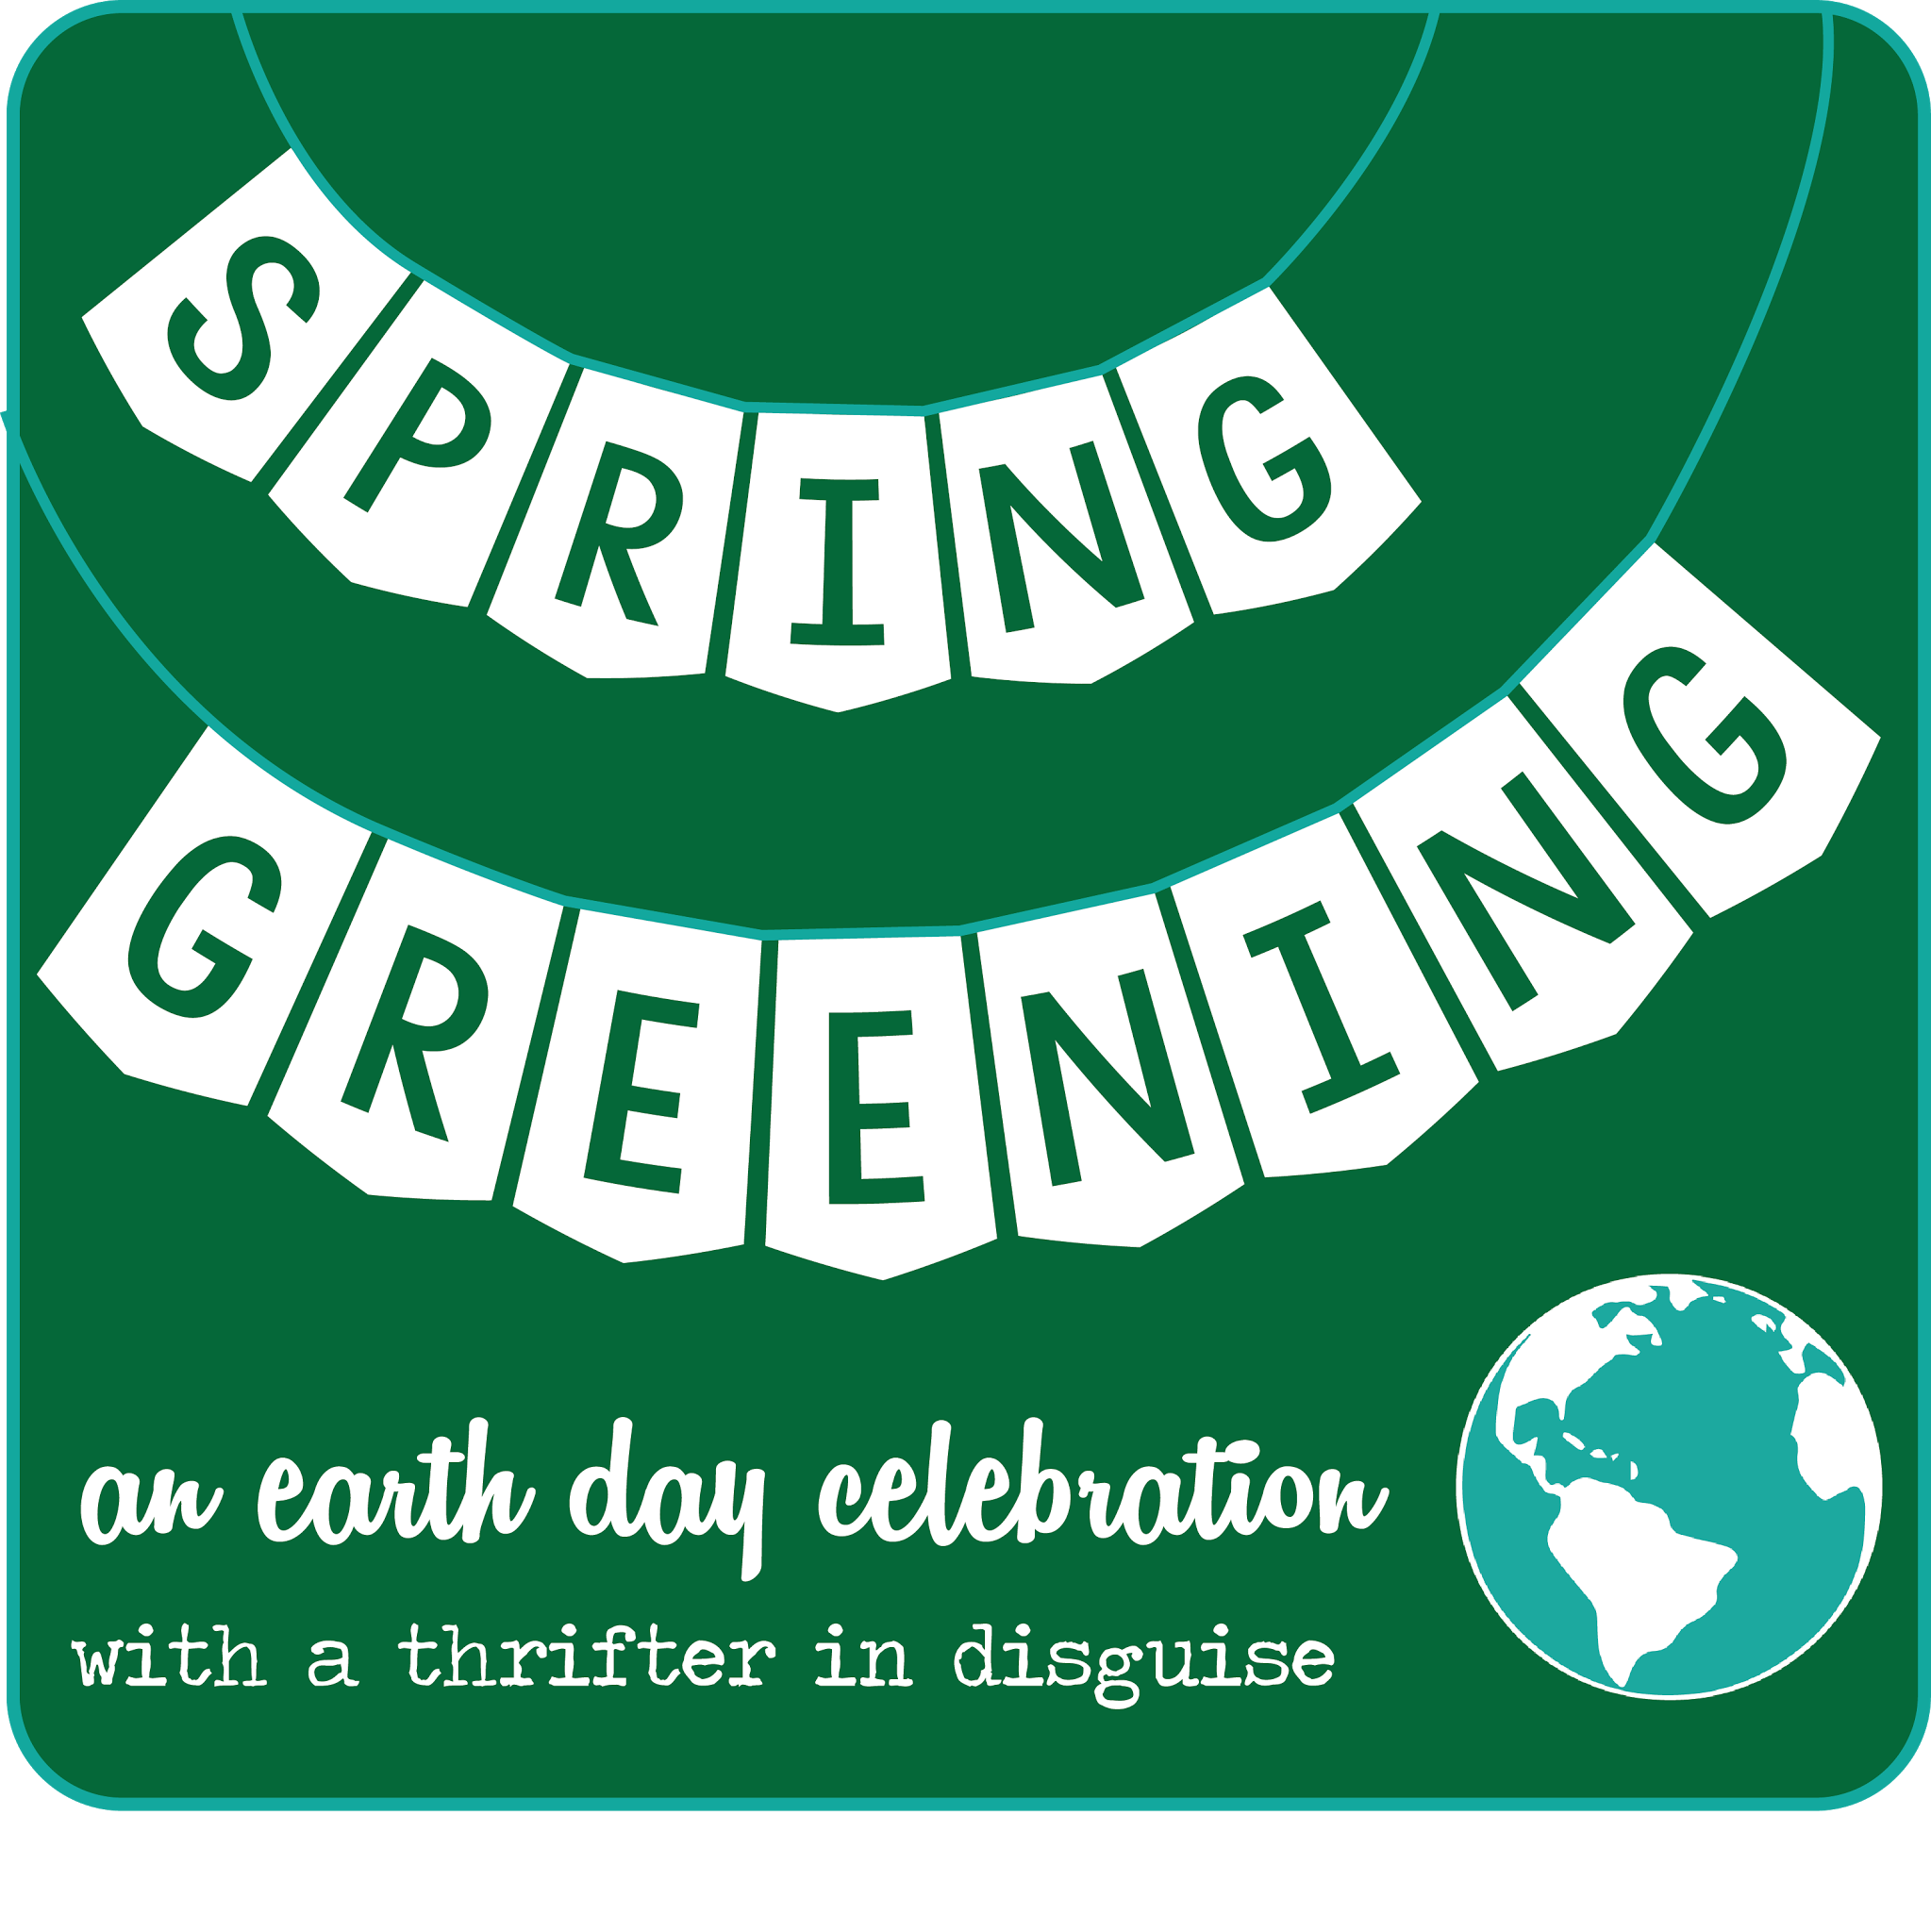 Spring Greening Month via thrifterindisguise.com